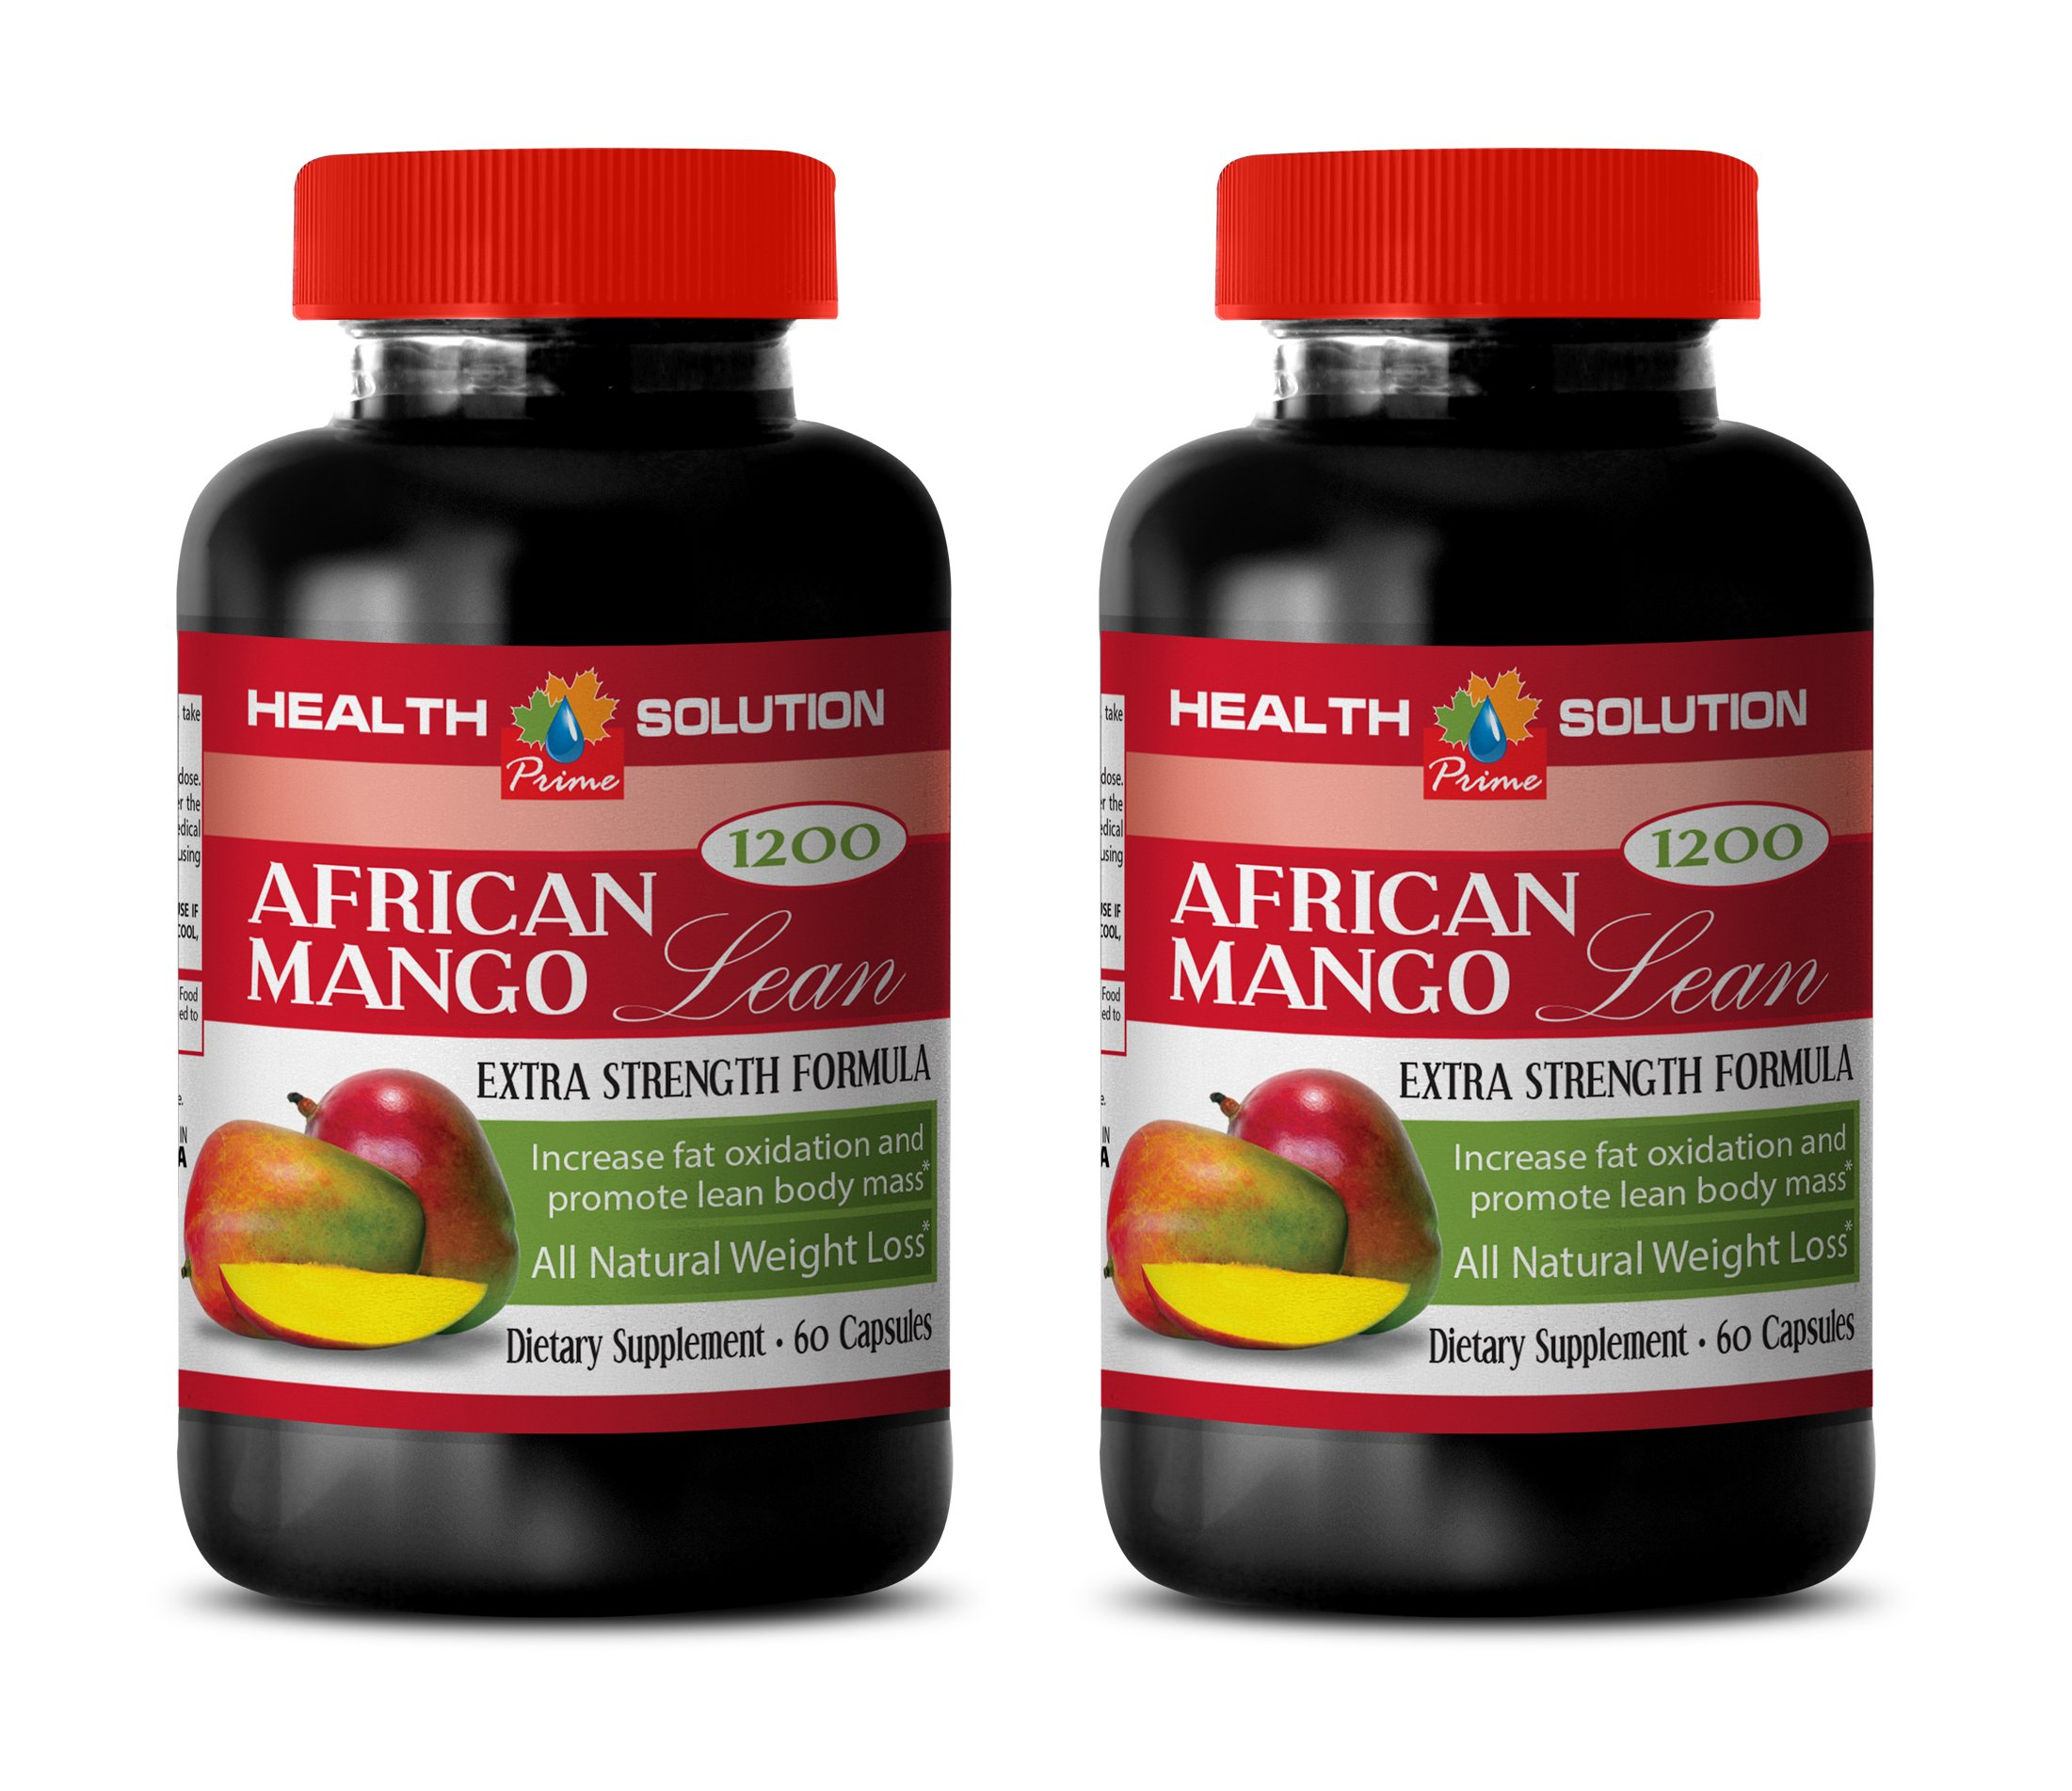 Organic african mango diet pills - AFRICAN MANGO LEAN Extra strength Formula 1200mg - Fat burner for weight loss women (2 Bottles 120 capsules) by Health Solution Prime